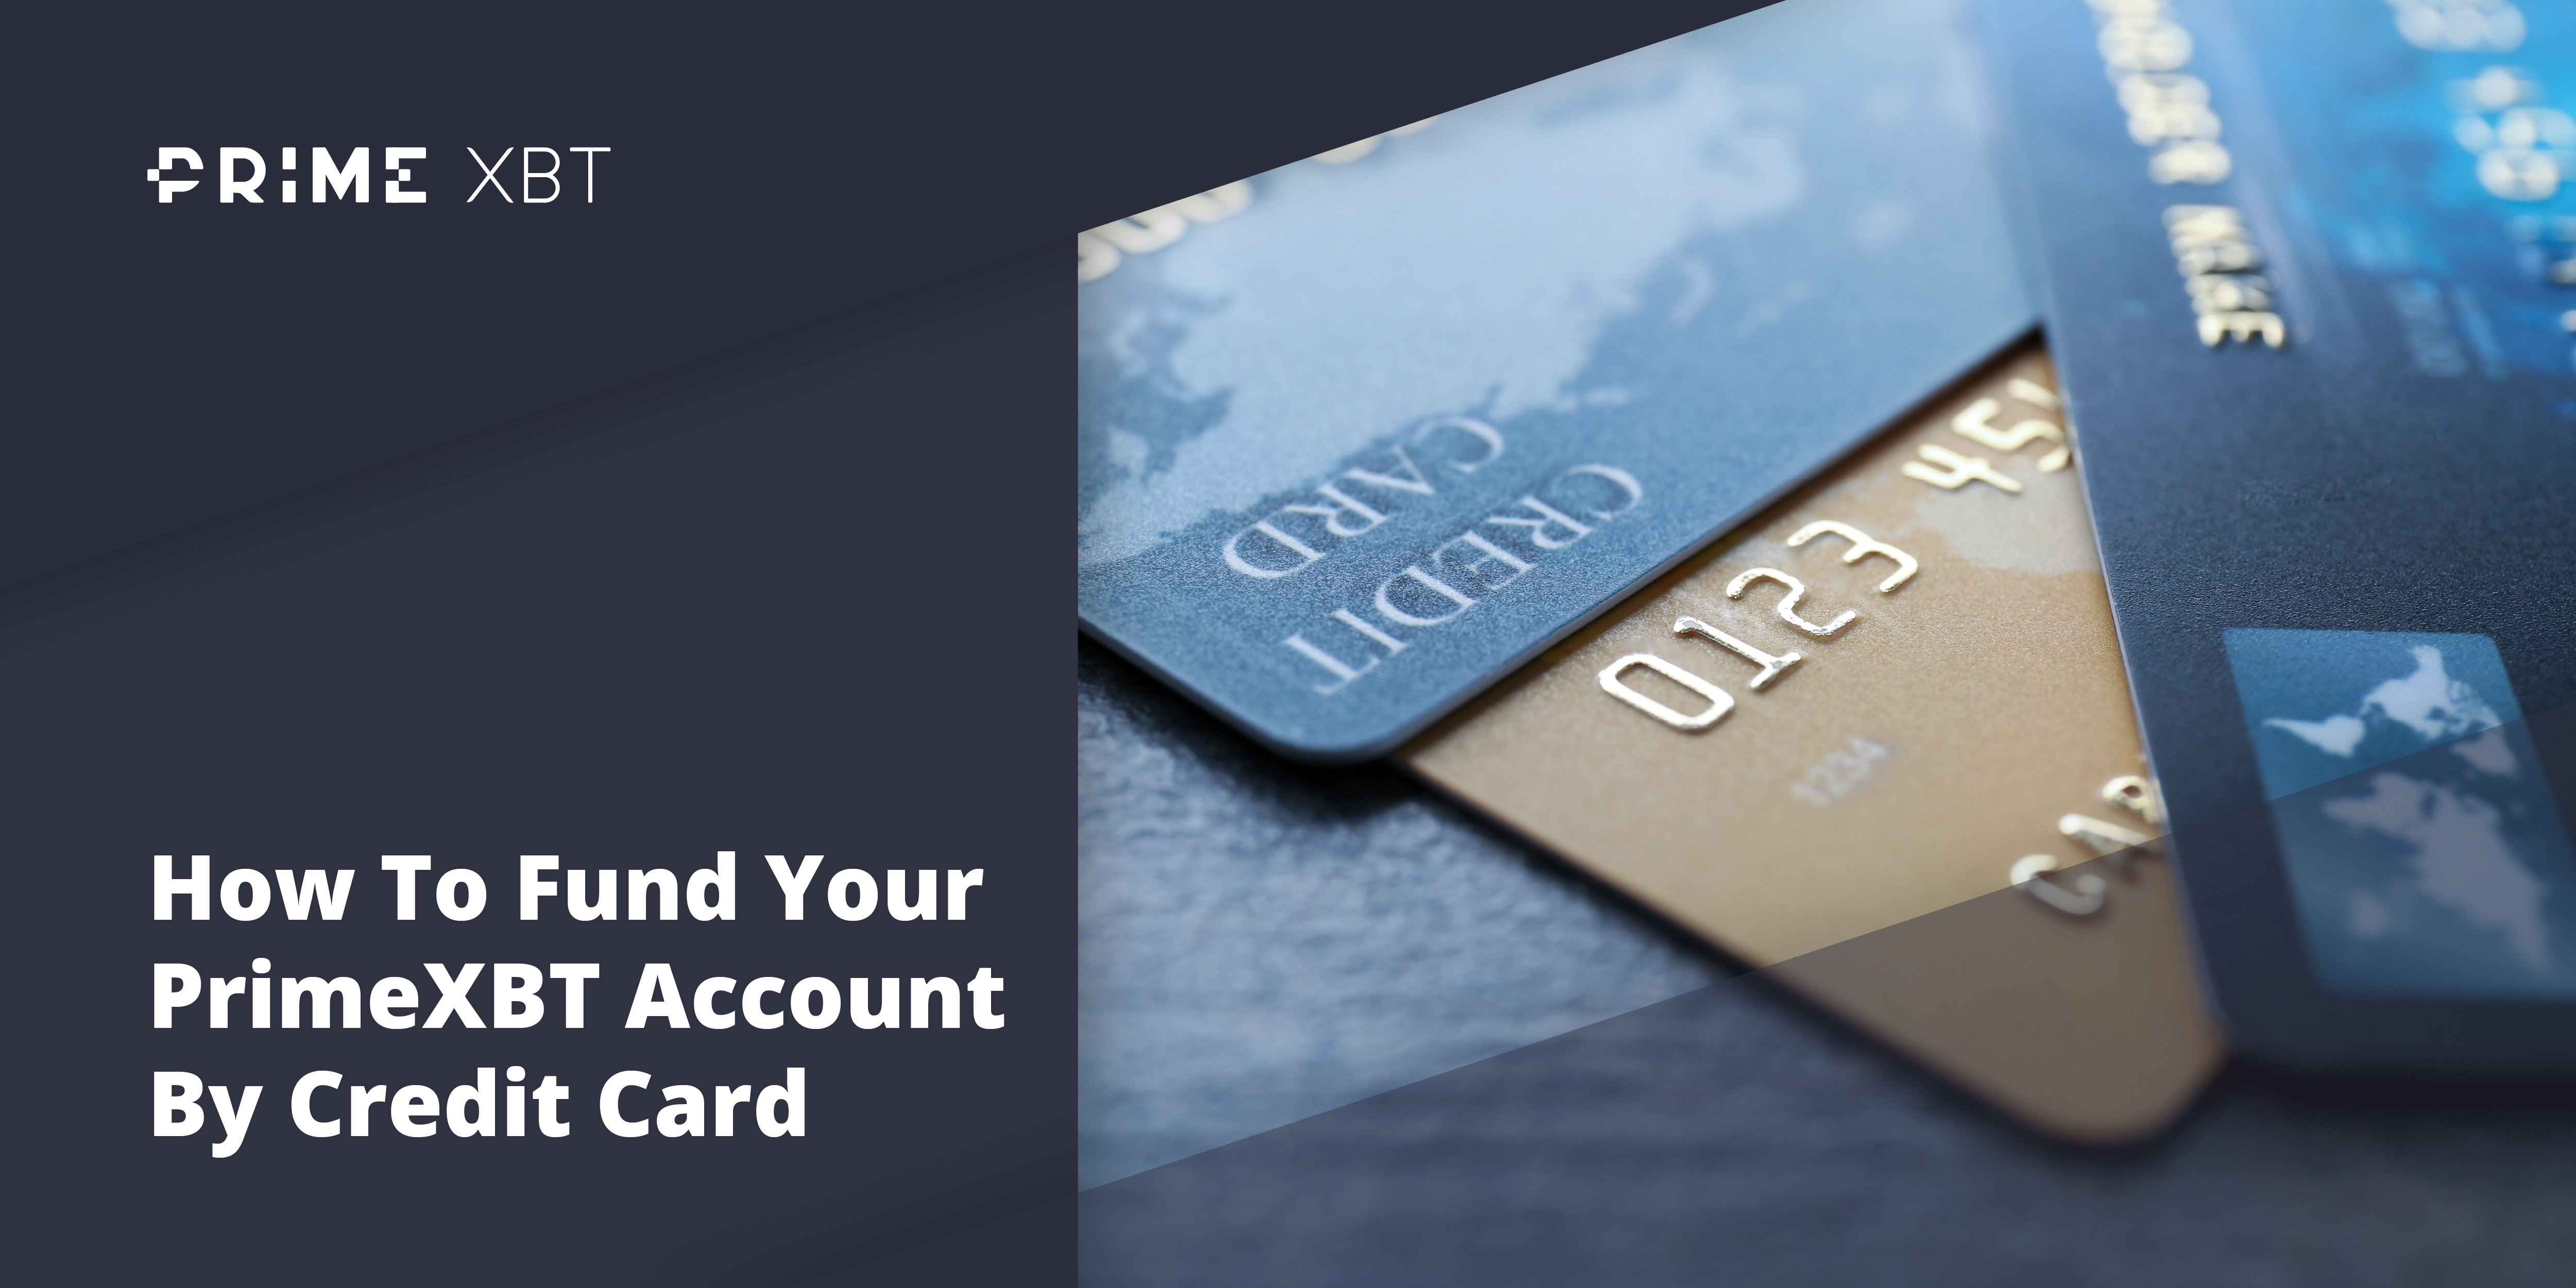 How To Fund Your PrimeXBT Account By Credit or Debit Card - credit card